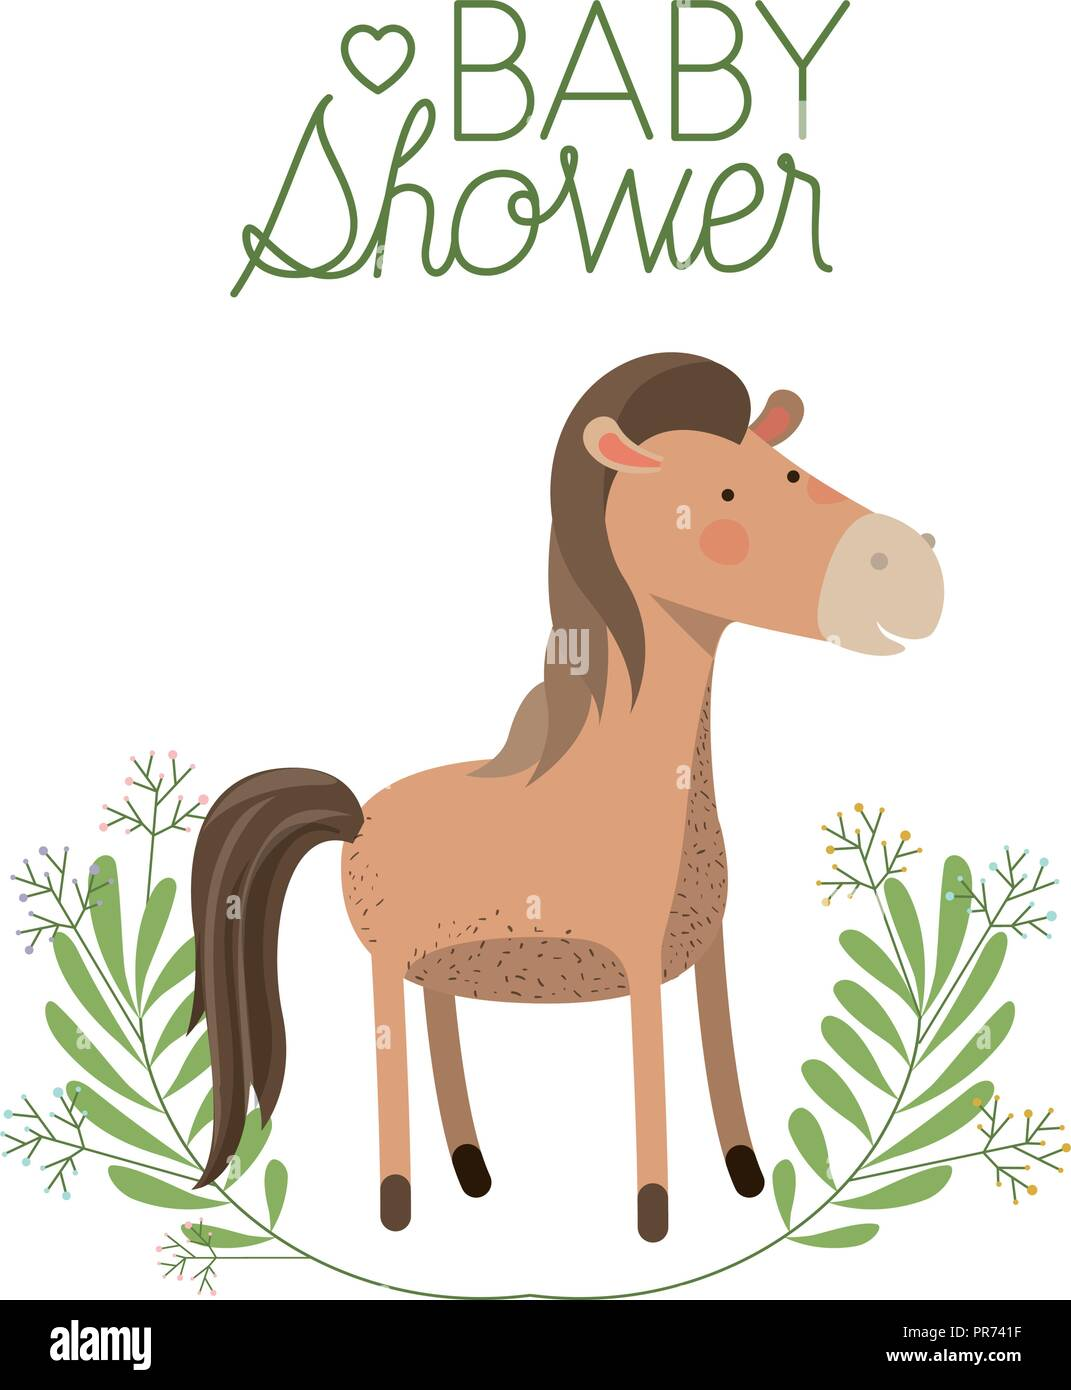 Cute Horse With Wreath Baby Shower Card Vector Illustration Design Stock Vector Image Art Alamy